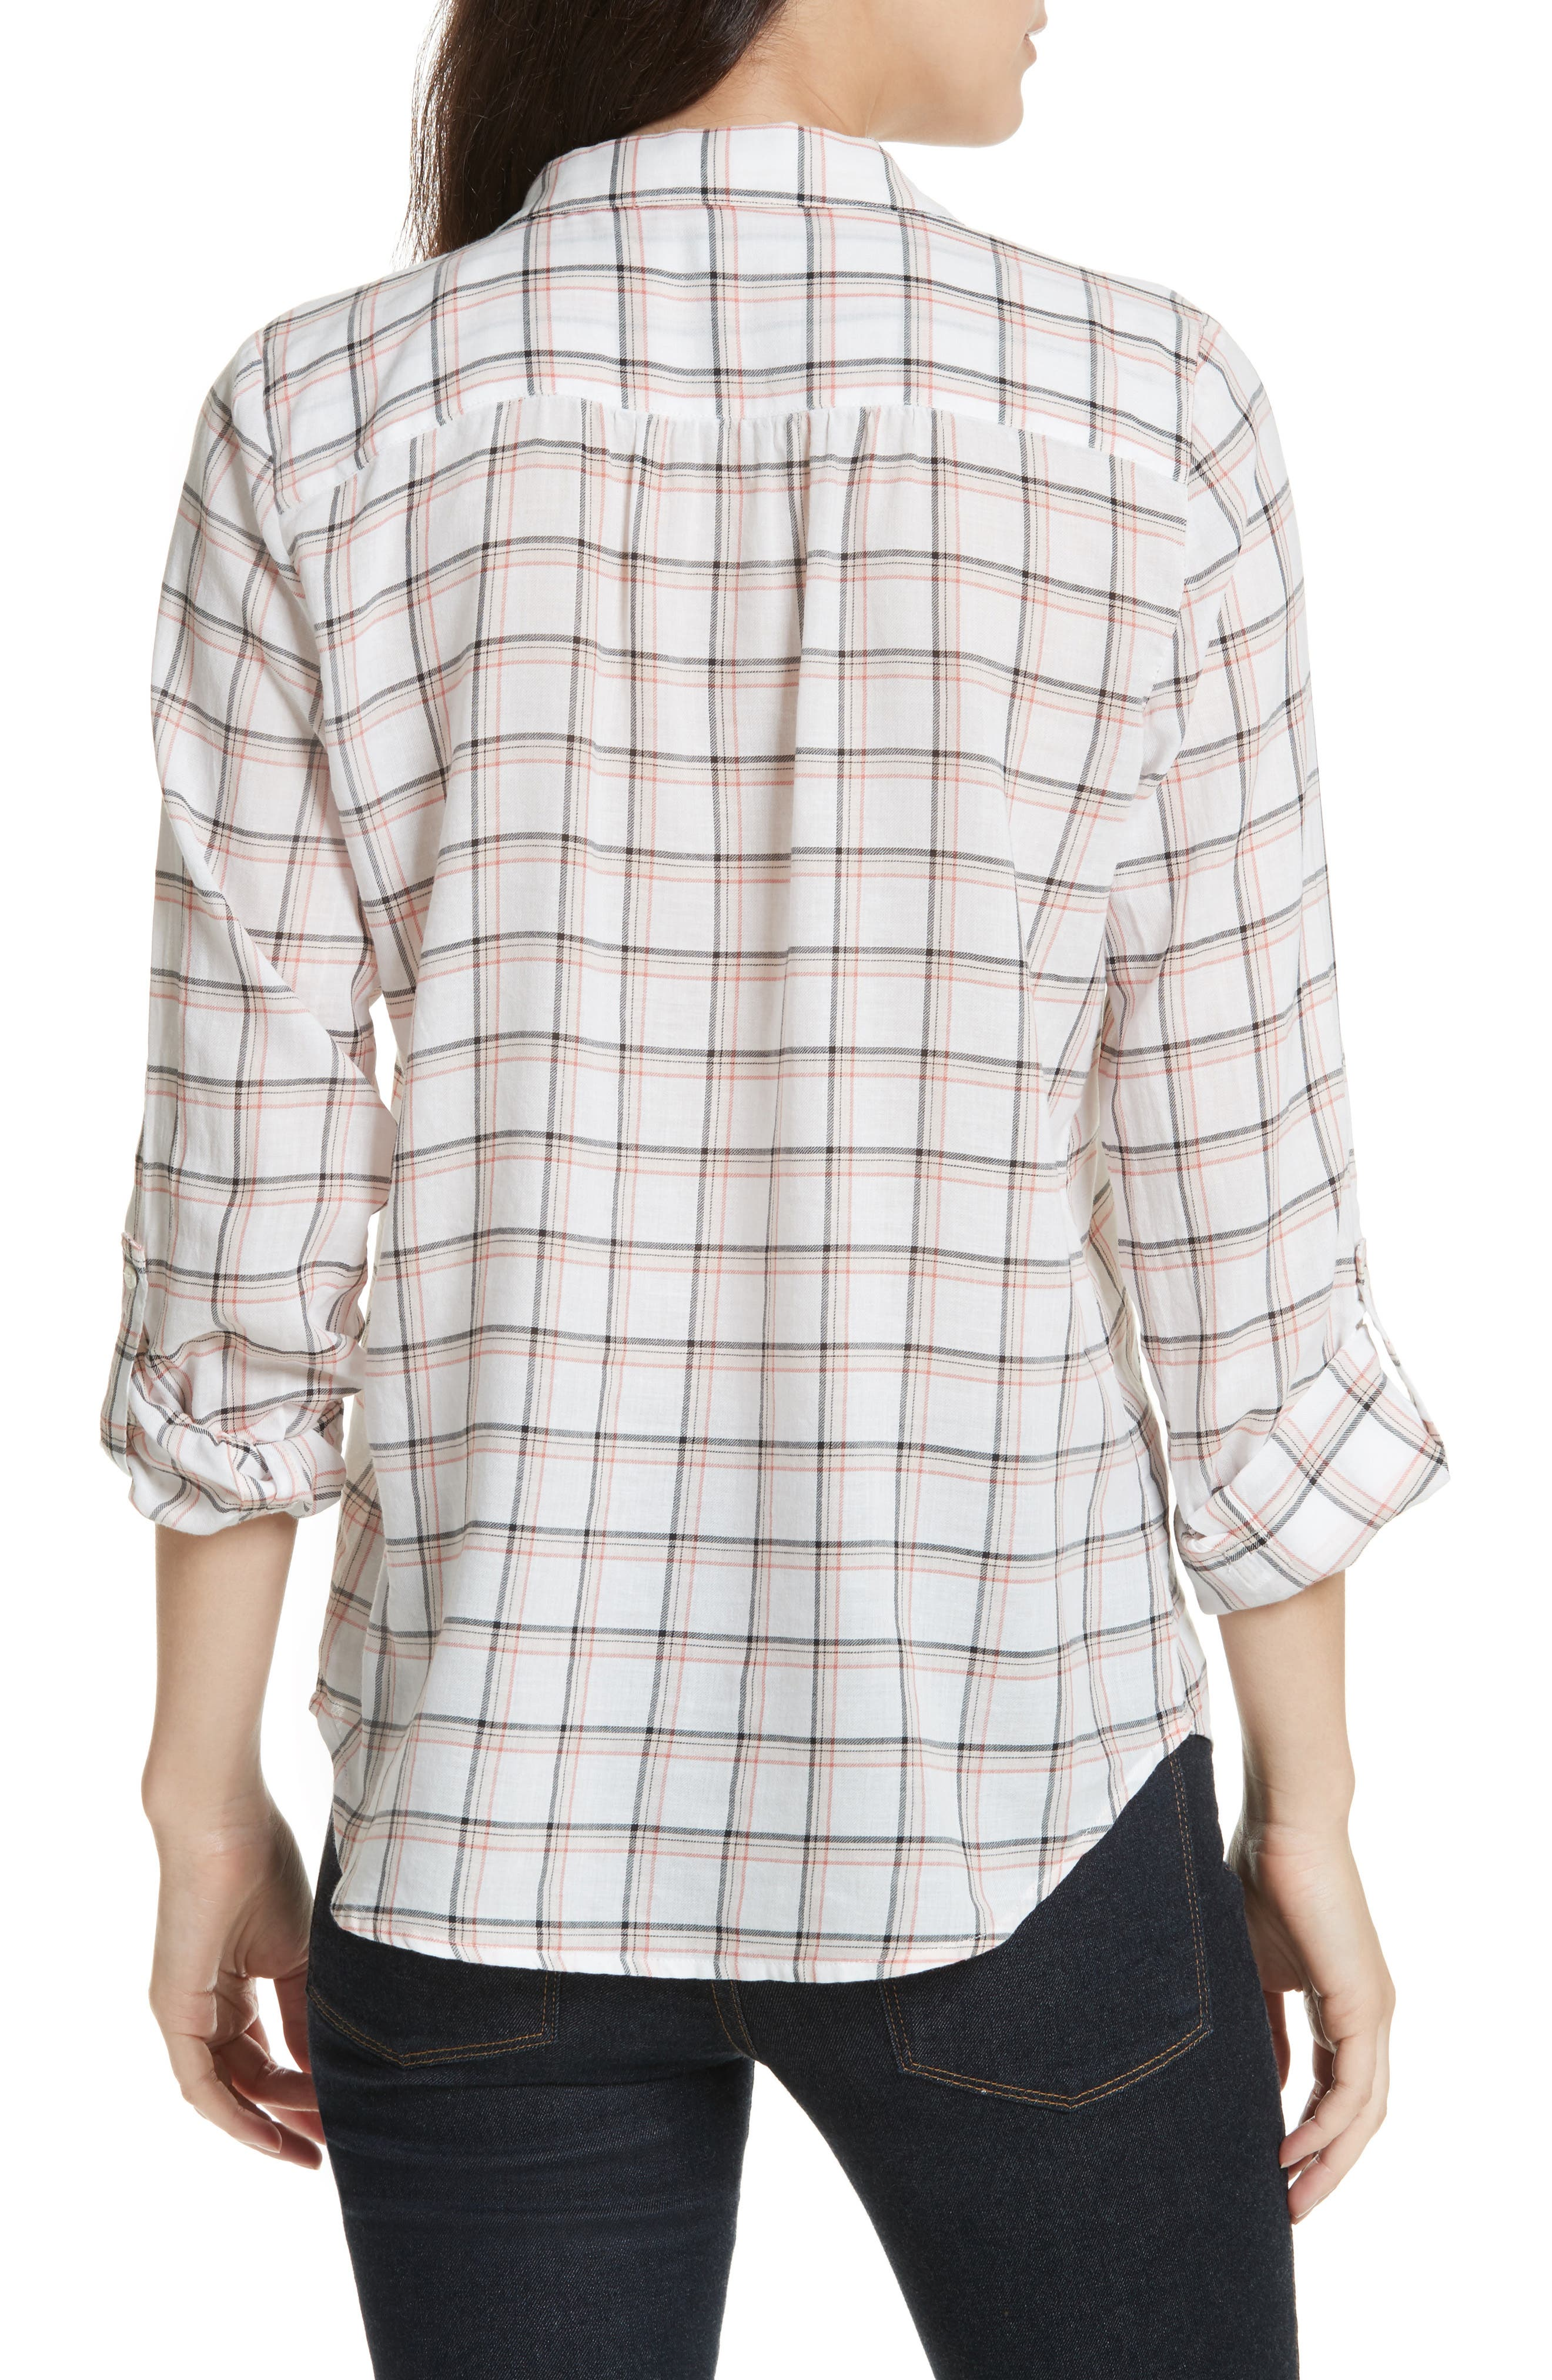 Fara Plaid Top,                             Alternate thumbnail 2, color,                             Porcelain